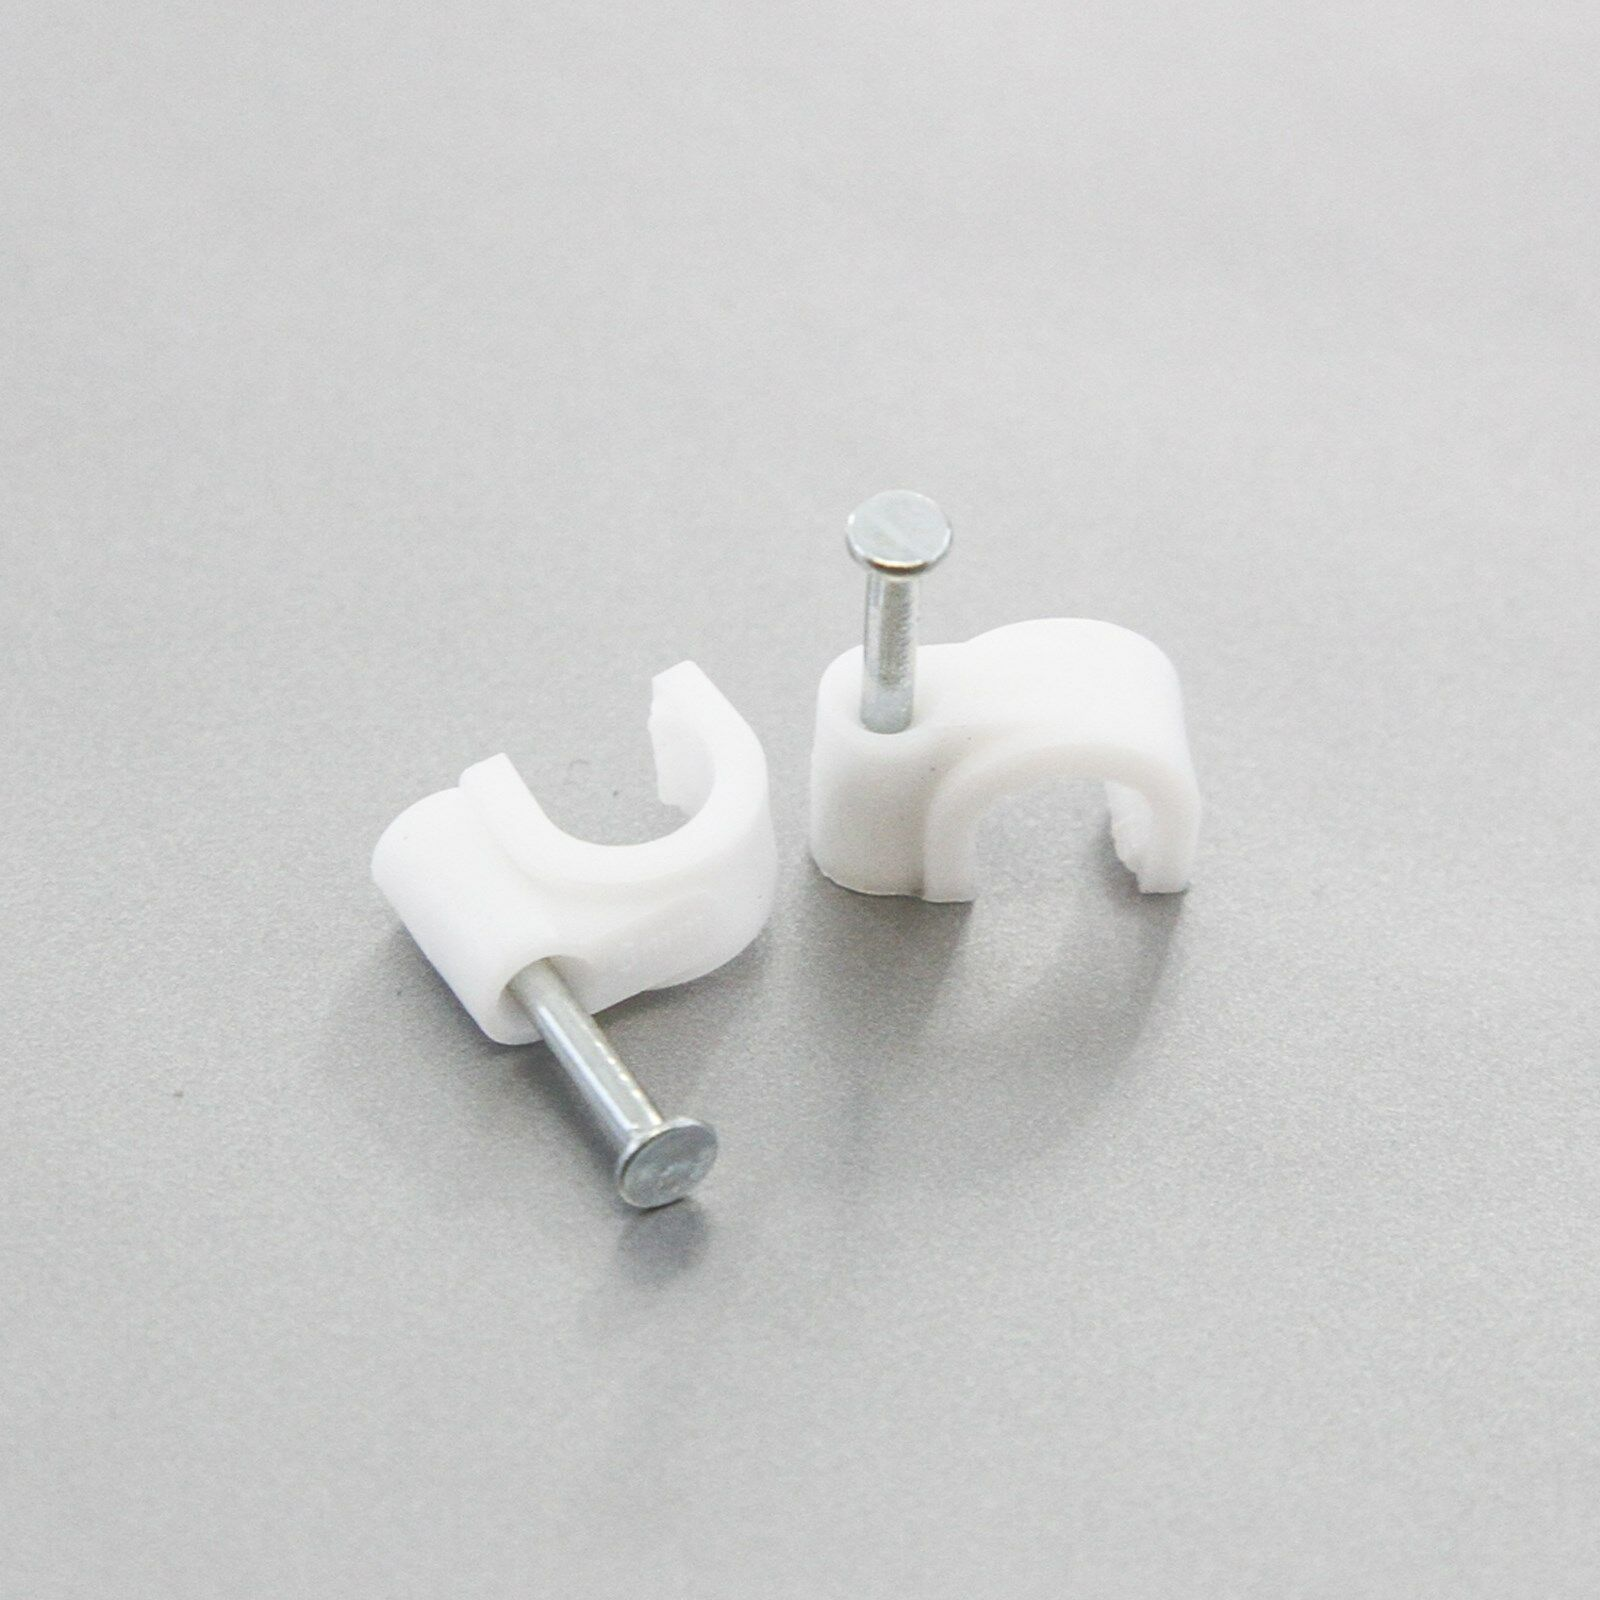 100PCS White Nylon Cable Clamp Clip UV Resistant Wire Electrical Hose Loop TB